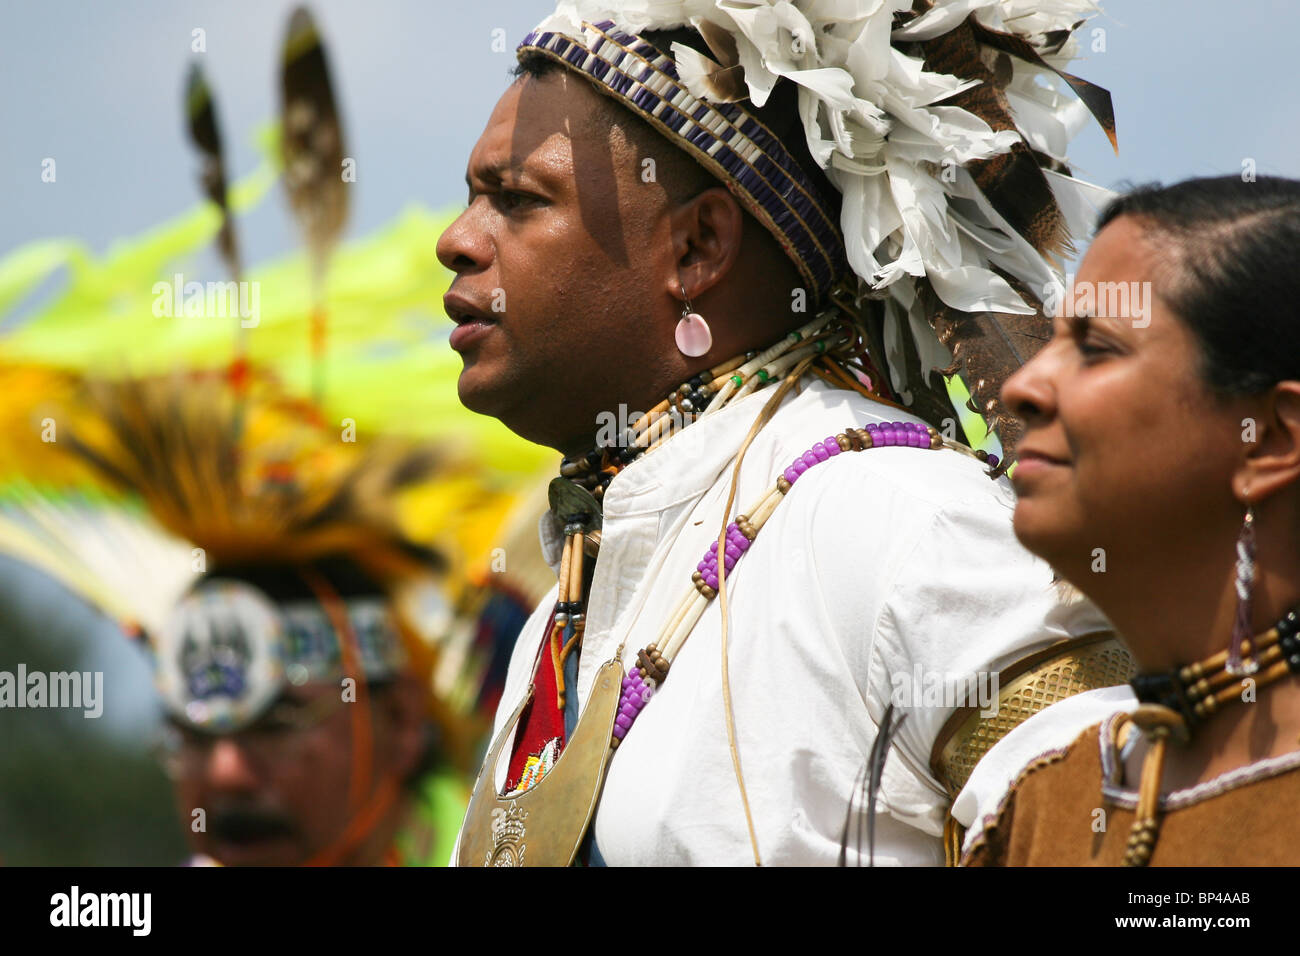 Native Americans in full traditional regalia parade in the dance circle at the 8th Annual Red Wing PowWow in Virginia - Stock Image